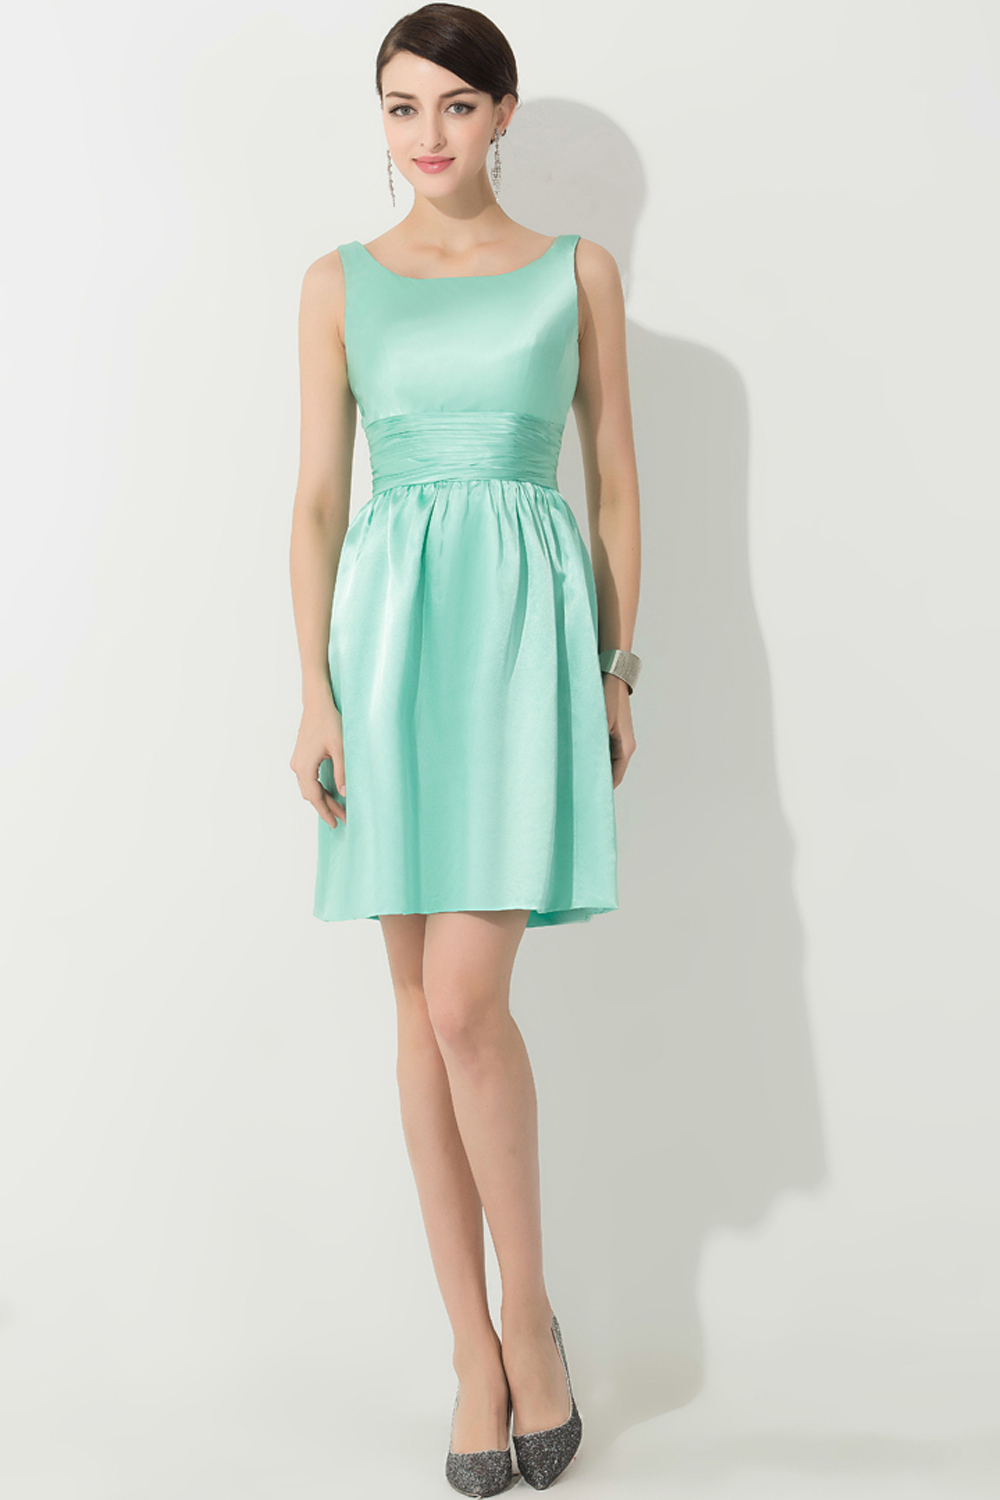 A-Line/Princess Square Neckline Mini-Length Satin Cocktail Dress with Pleats